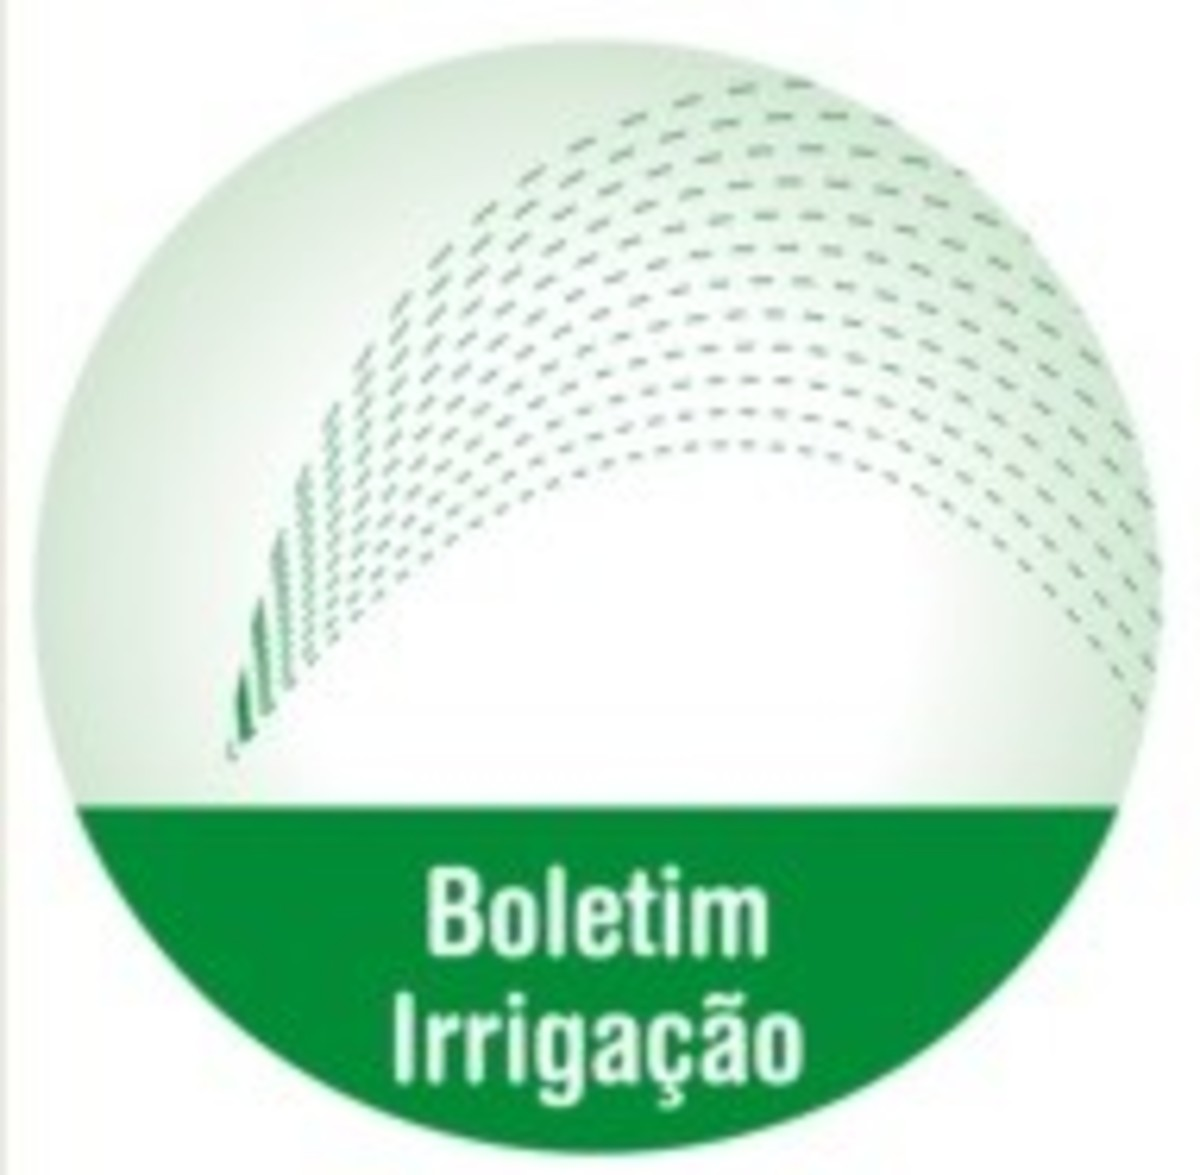 Medium texto boletim irrigacao1